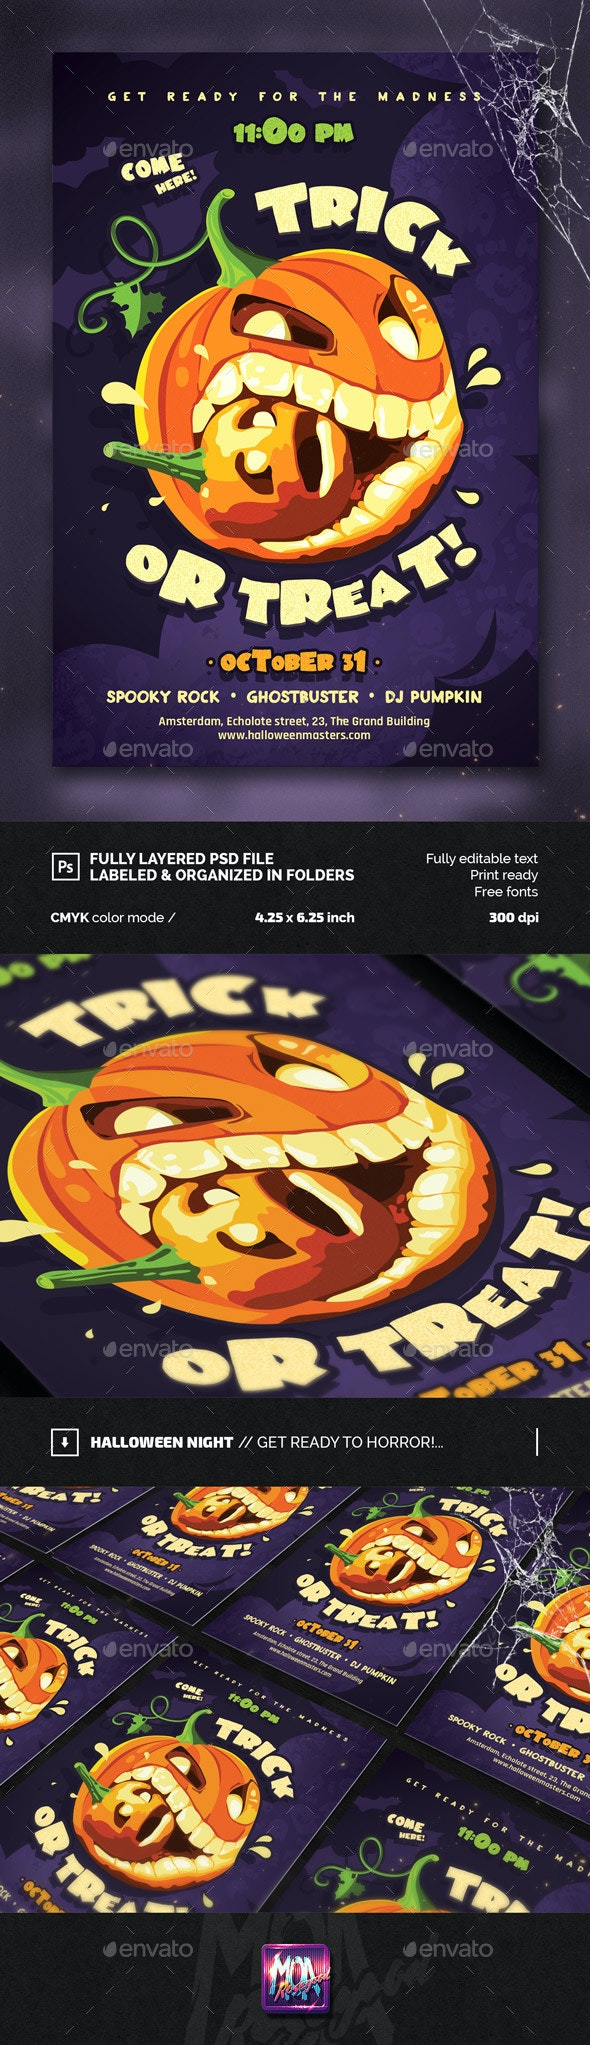 Trick or Treat, Halloween Flyer - Events Flyers